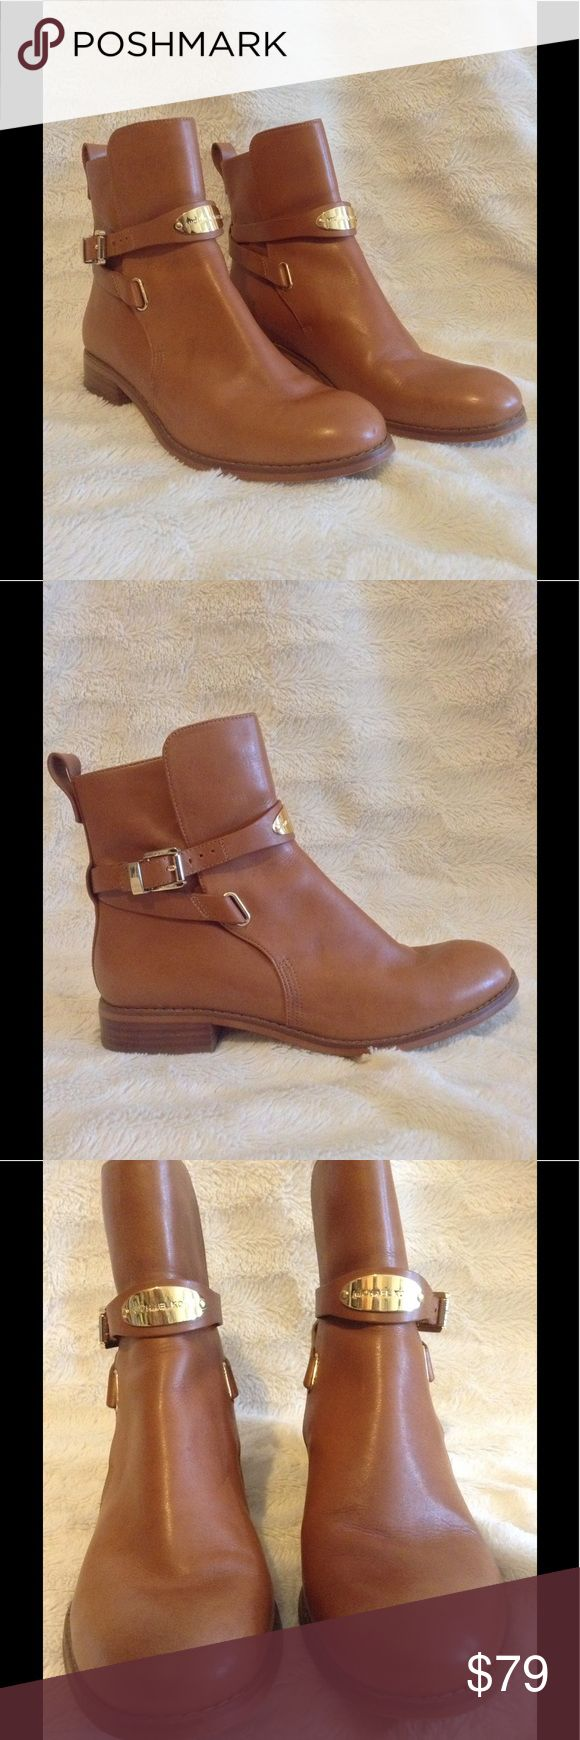 Michael Kors ankle boots size 7.5 These brown leather boots are in great condition and feature gold accents. Great with jeans/leggings and for the up coming weather! Michael Kors Shoes Ankle Boots & Booties